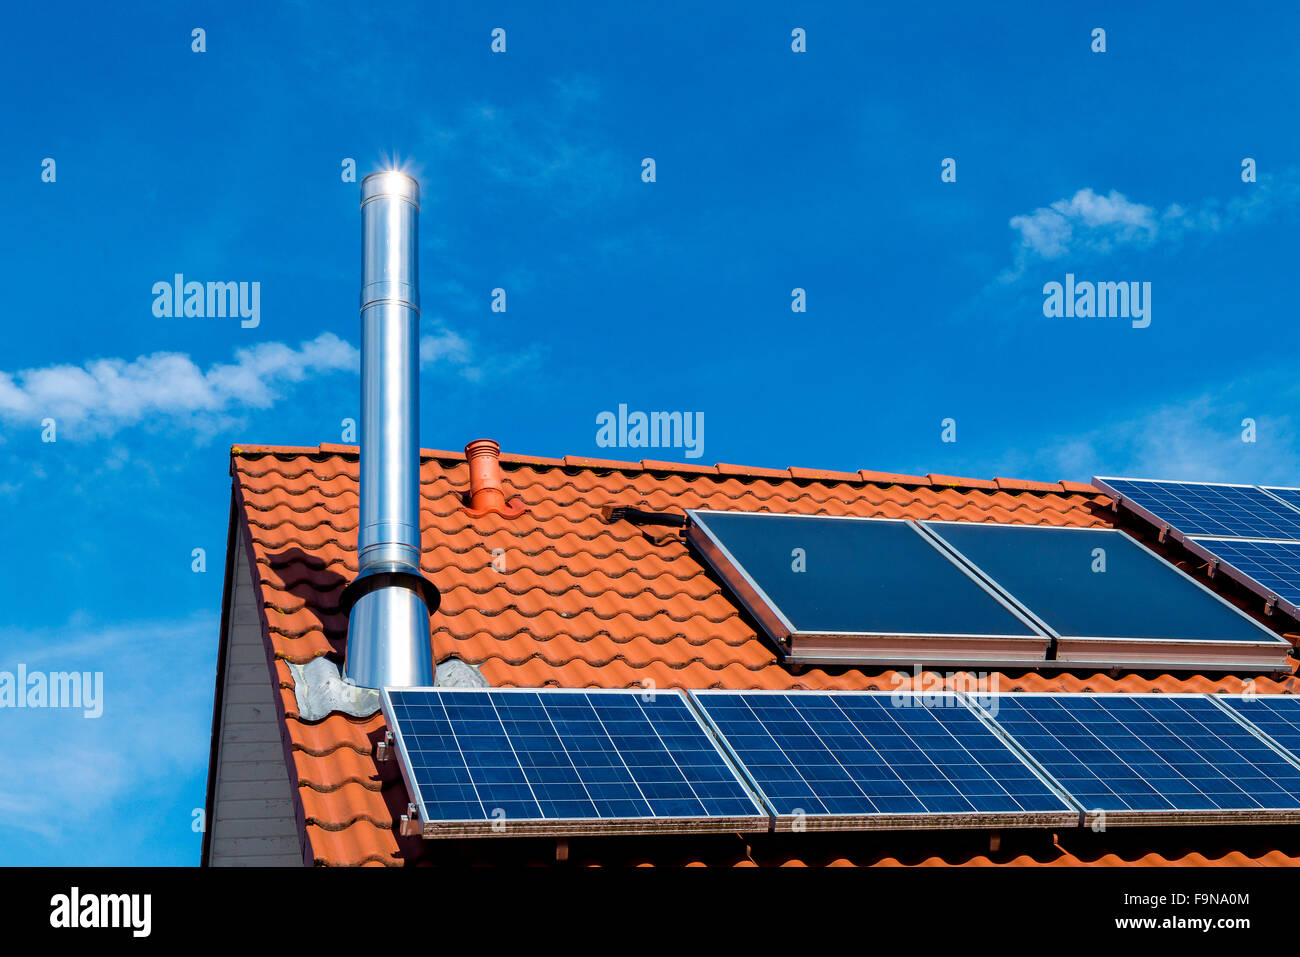 House roof with solar panels, stainless steel chimney, energy transition - Stock Image